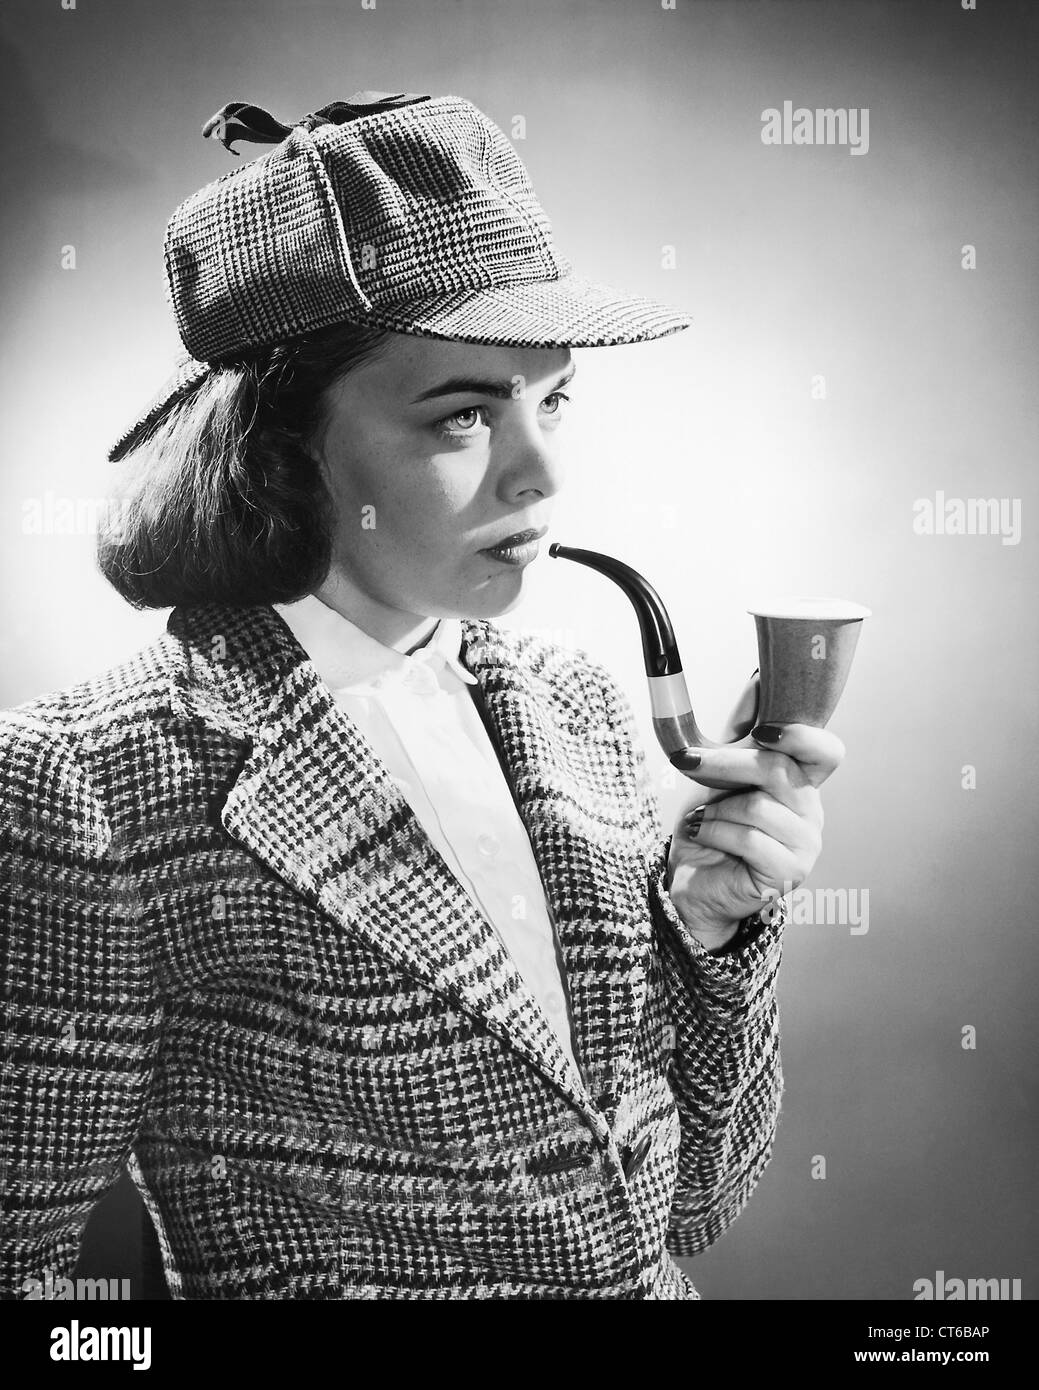 Vintage Female Sherlock Holmes Detective Smoking A Pipe